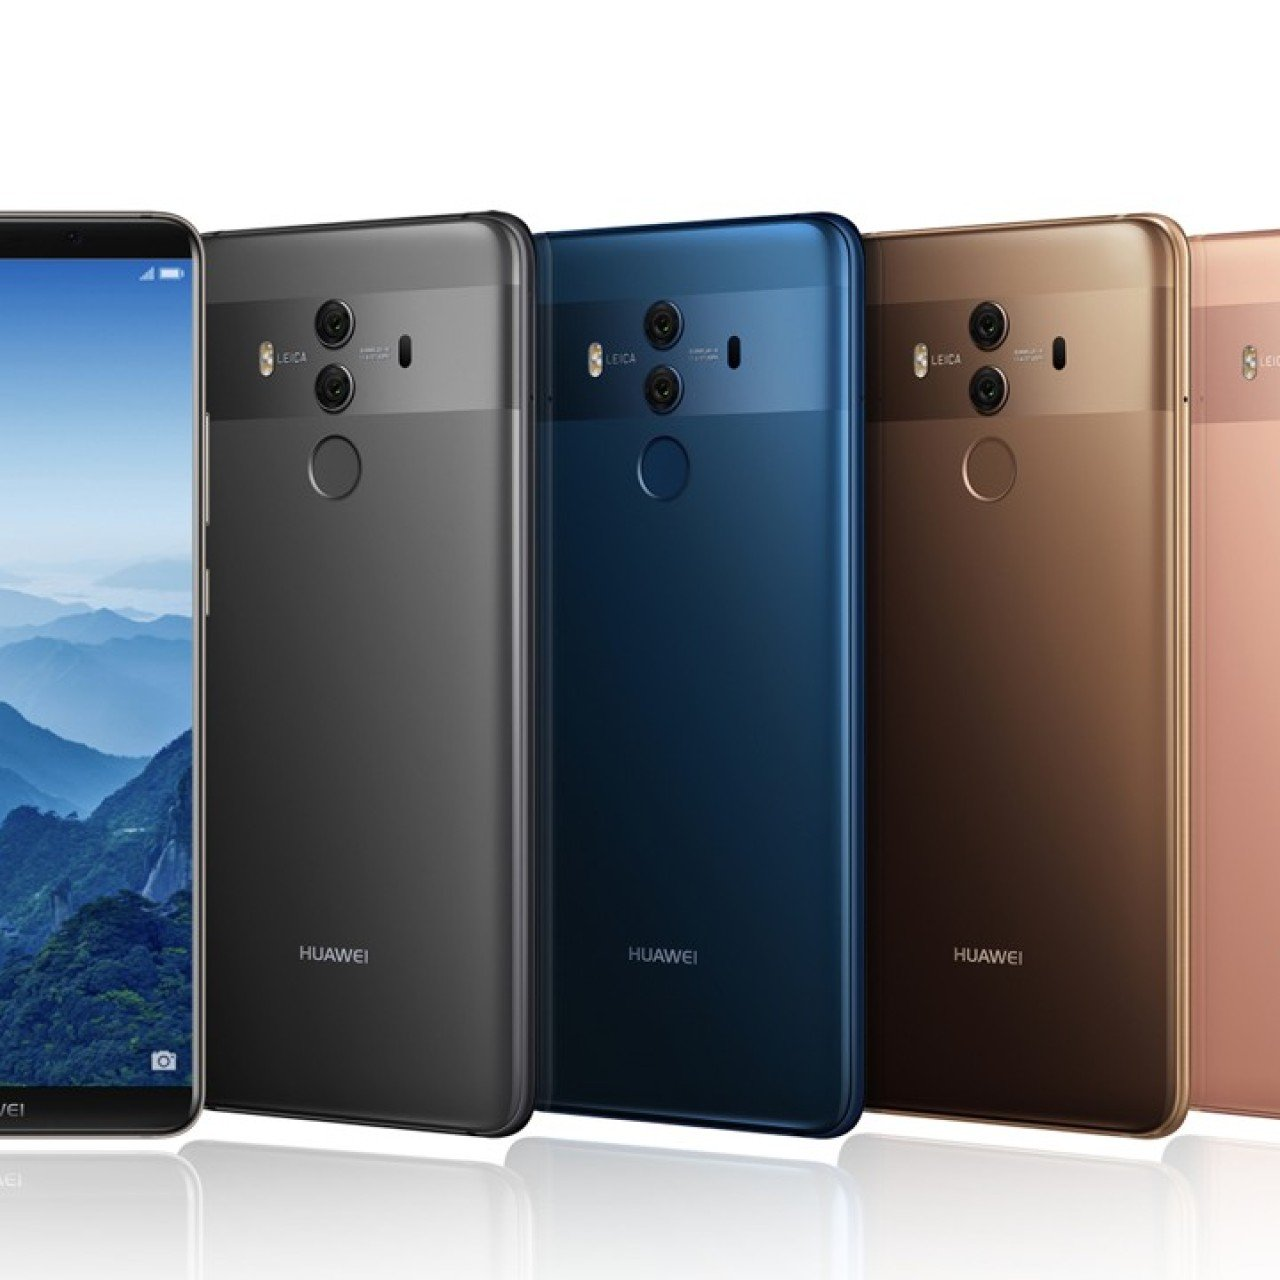 Huawei adds on-phone AI capability to high-end Mate smartphones